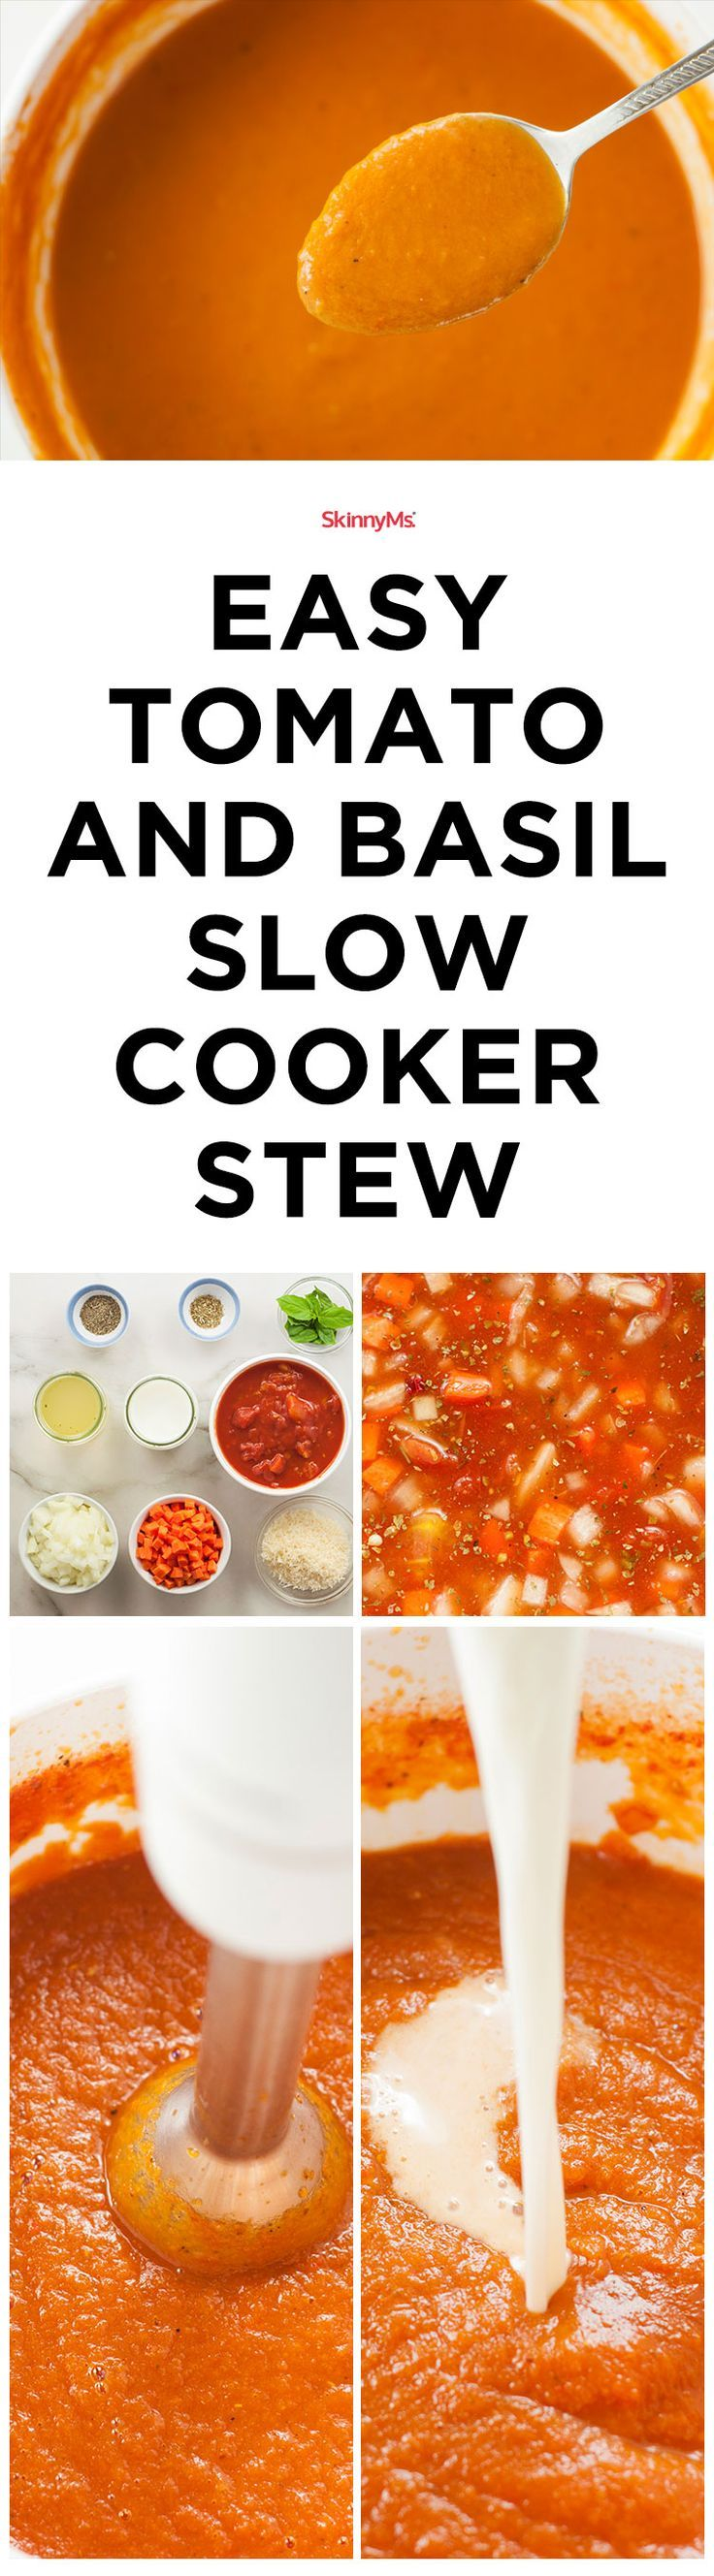 This is what the slow cooker was invented for! | Easy Tomato and Basil Slow Cooker Stew | slow cooker recipe | easy soup recipes